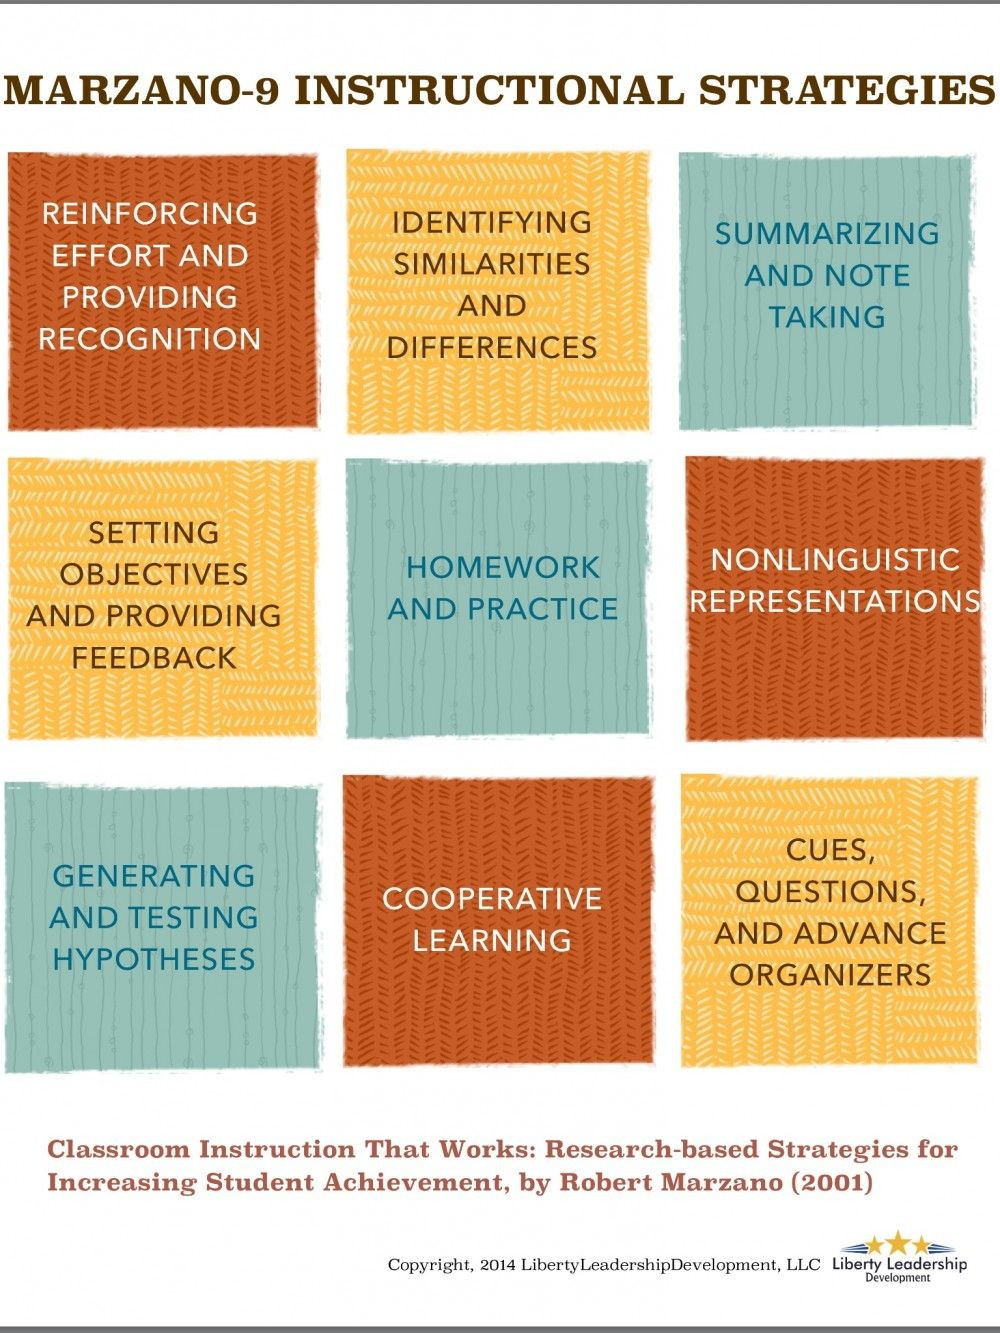 Marzanos 9 Instructional Strategies Infographic Elearning